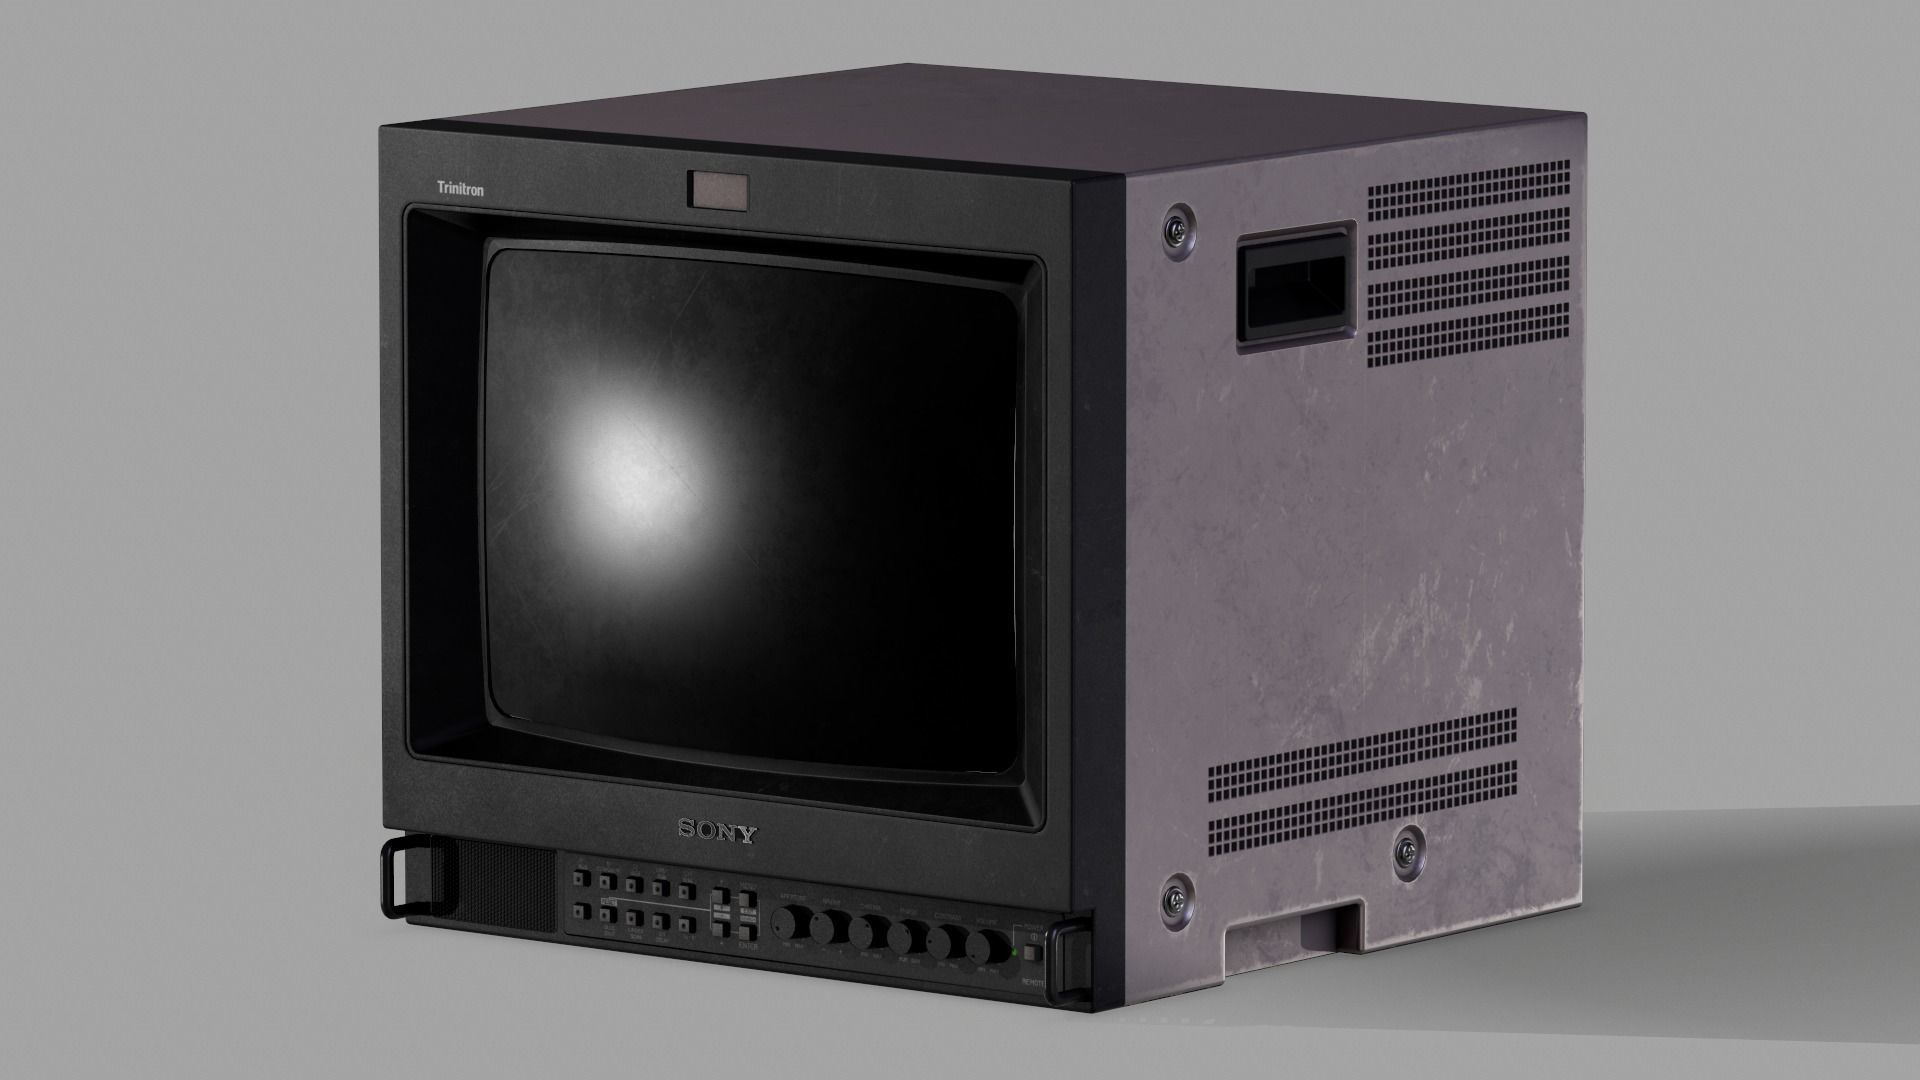 Sony Trinitron TV Set